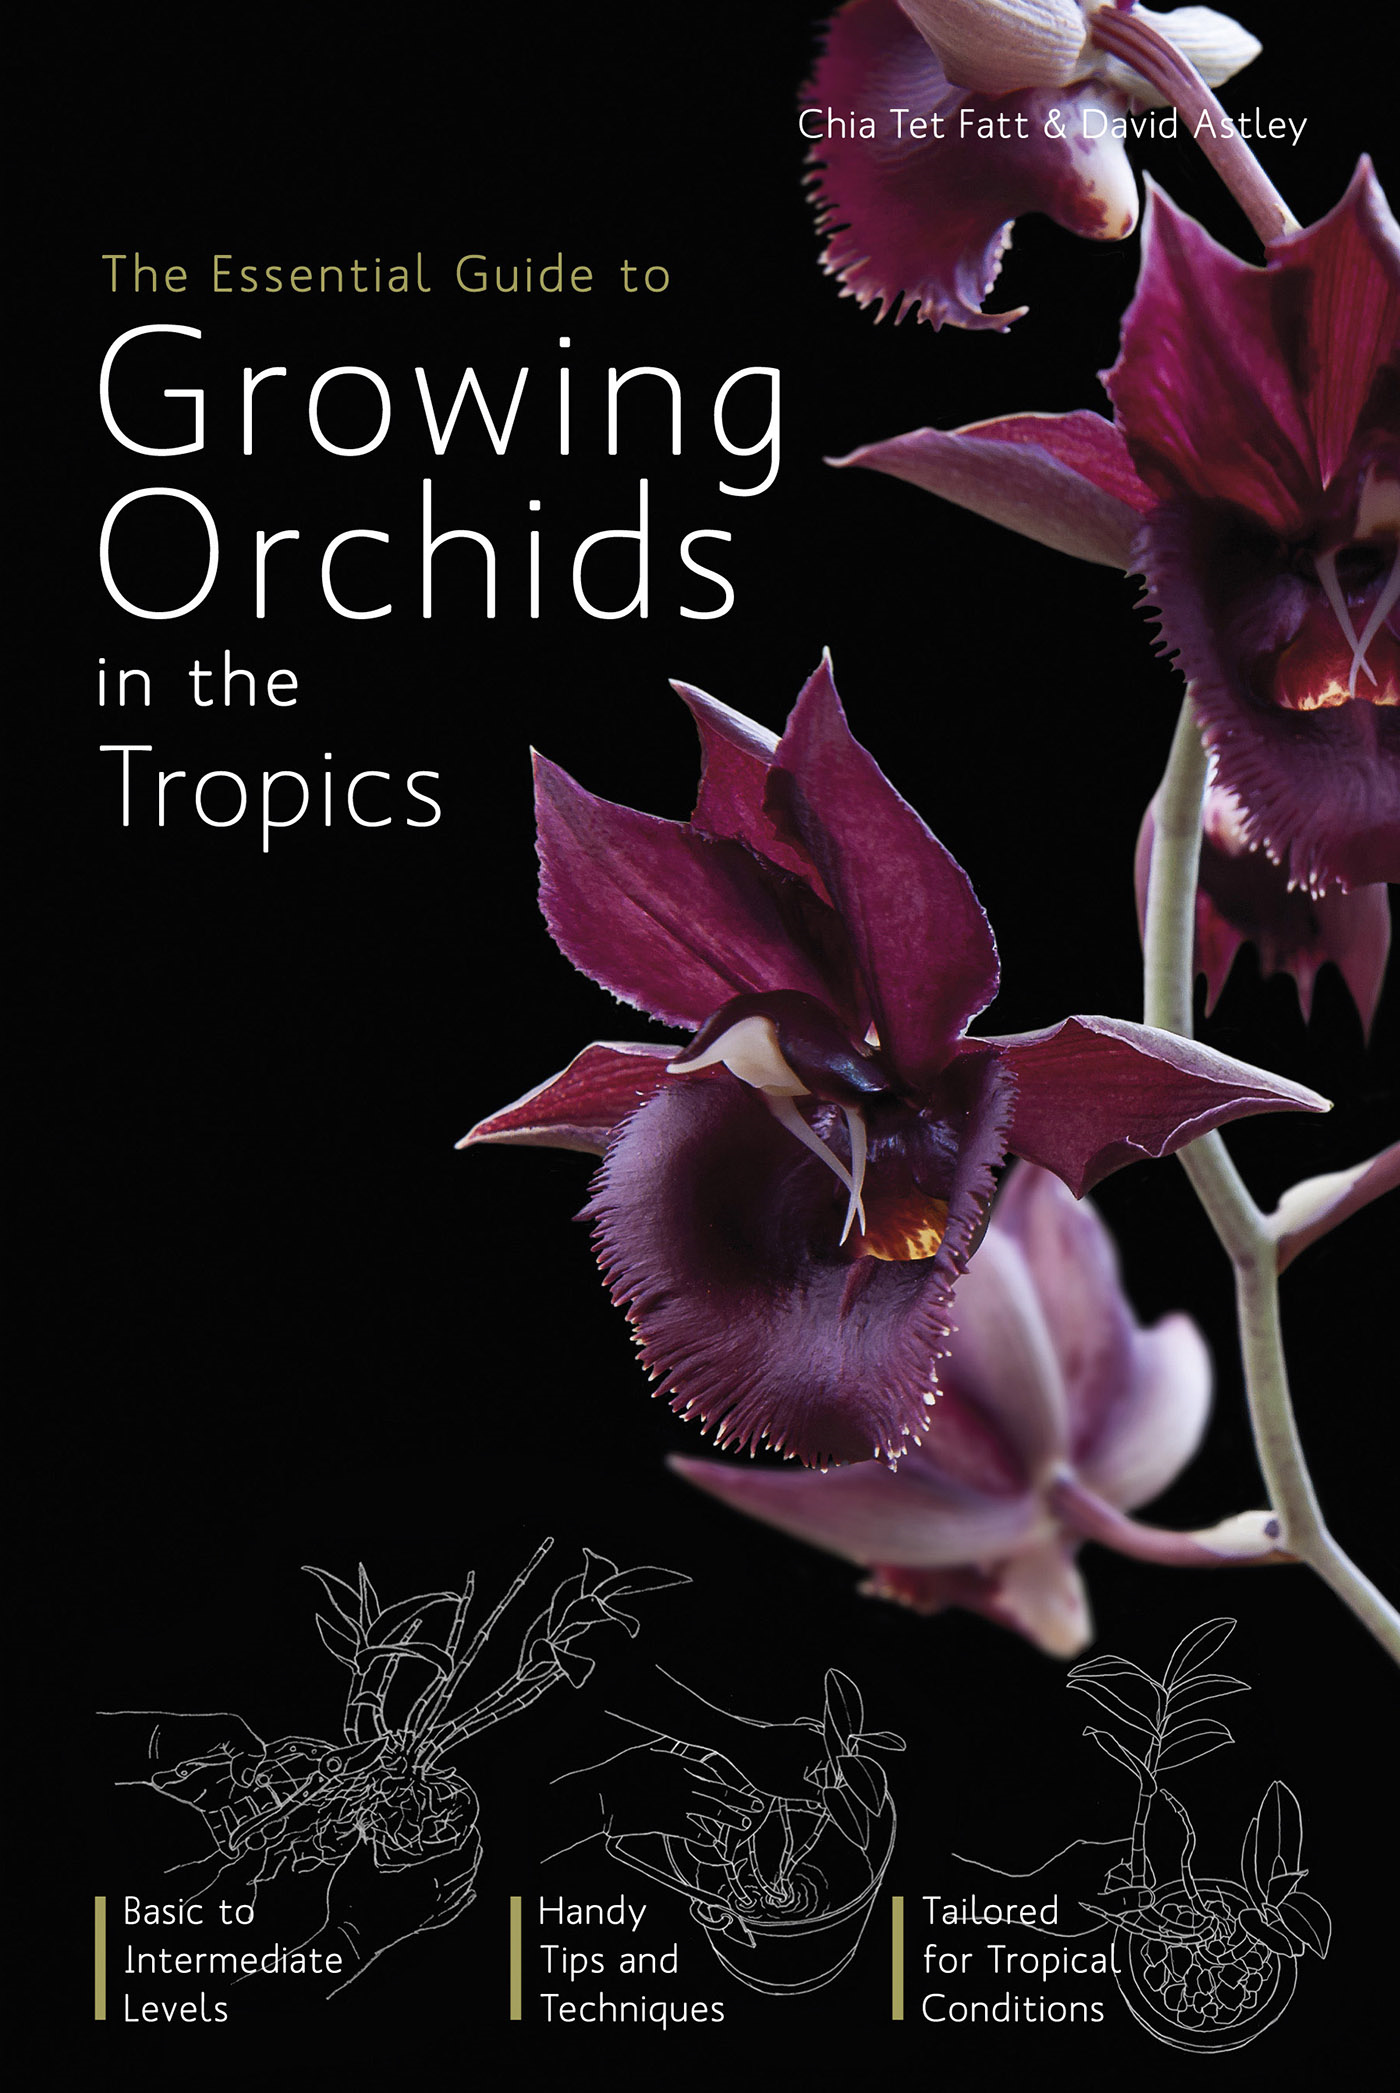 The Essential Guide to Growing Orchids